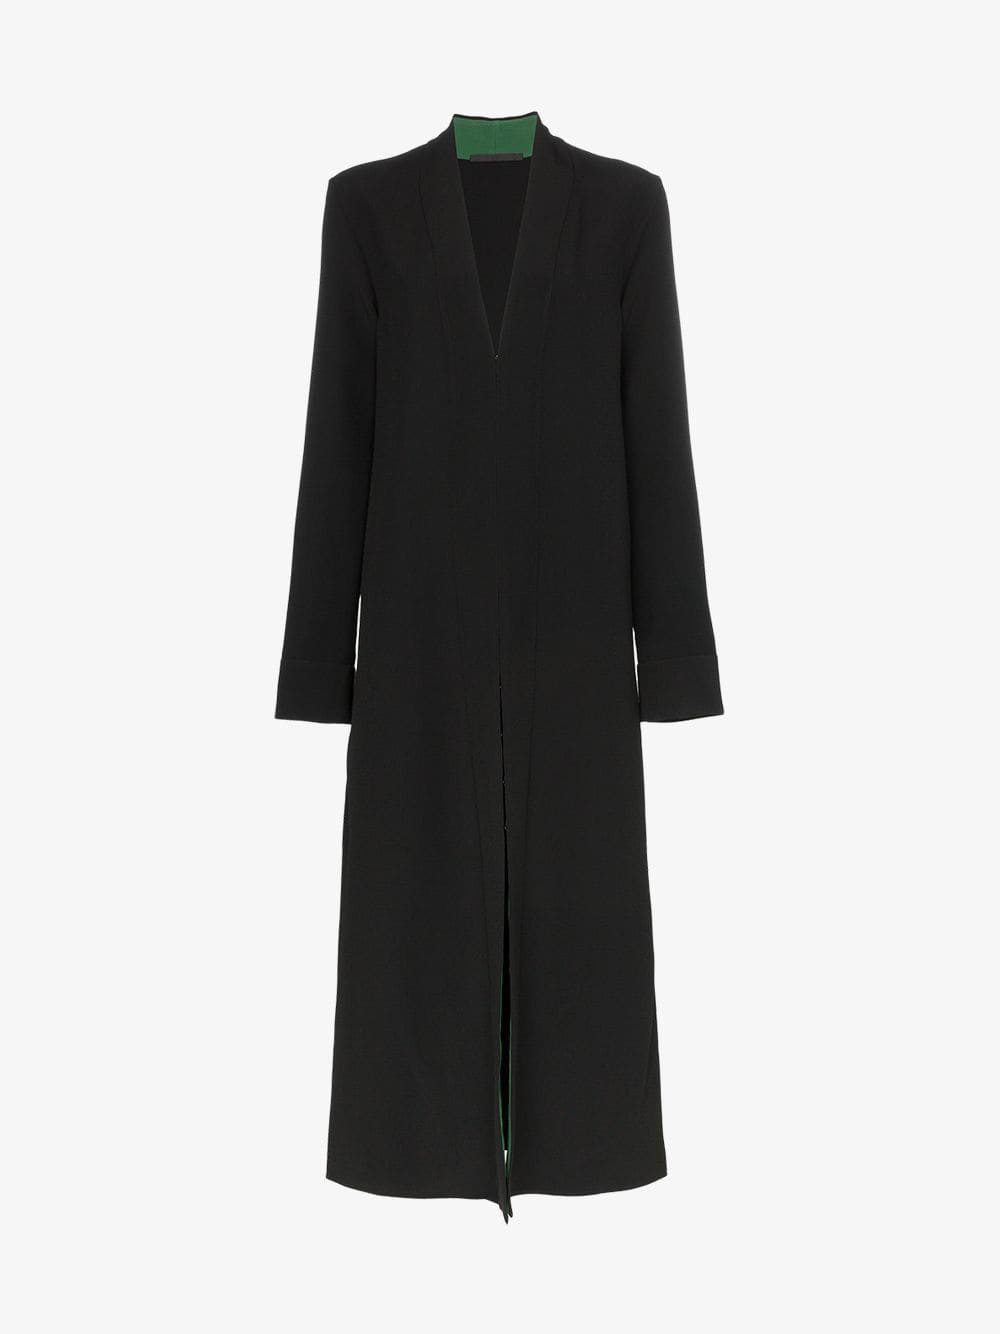 Haider Ackermann Contrast lining collarless coat in black